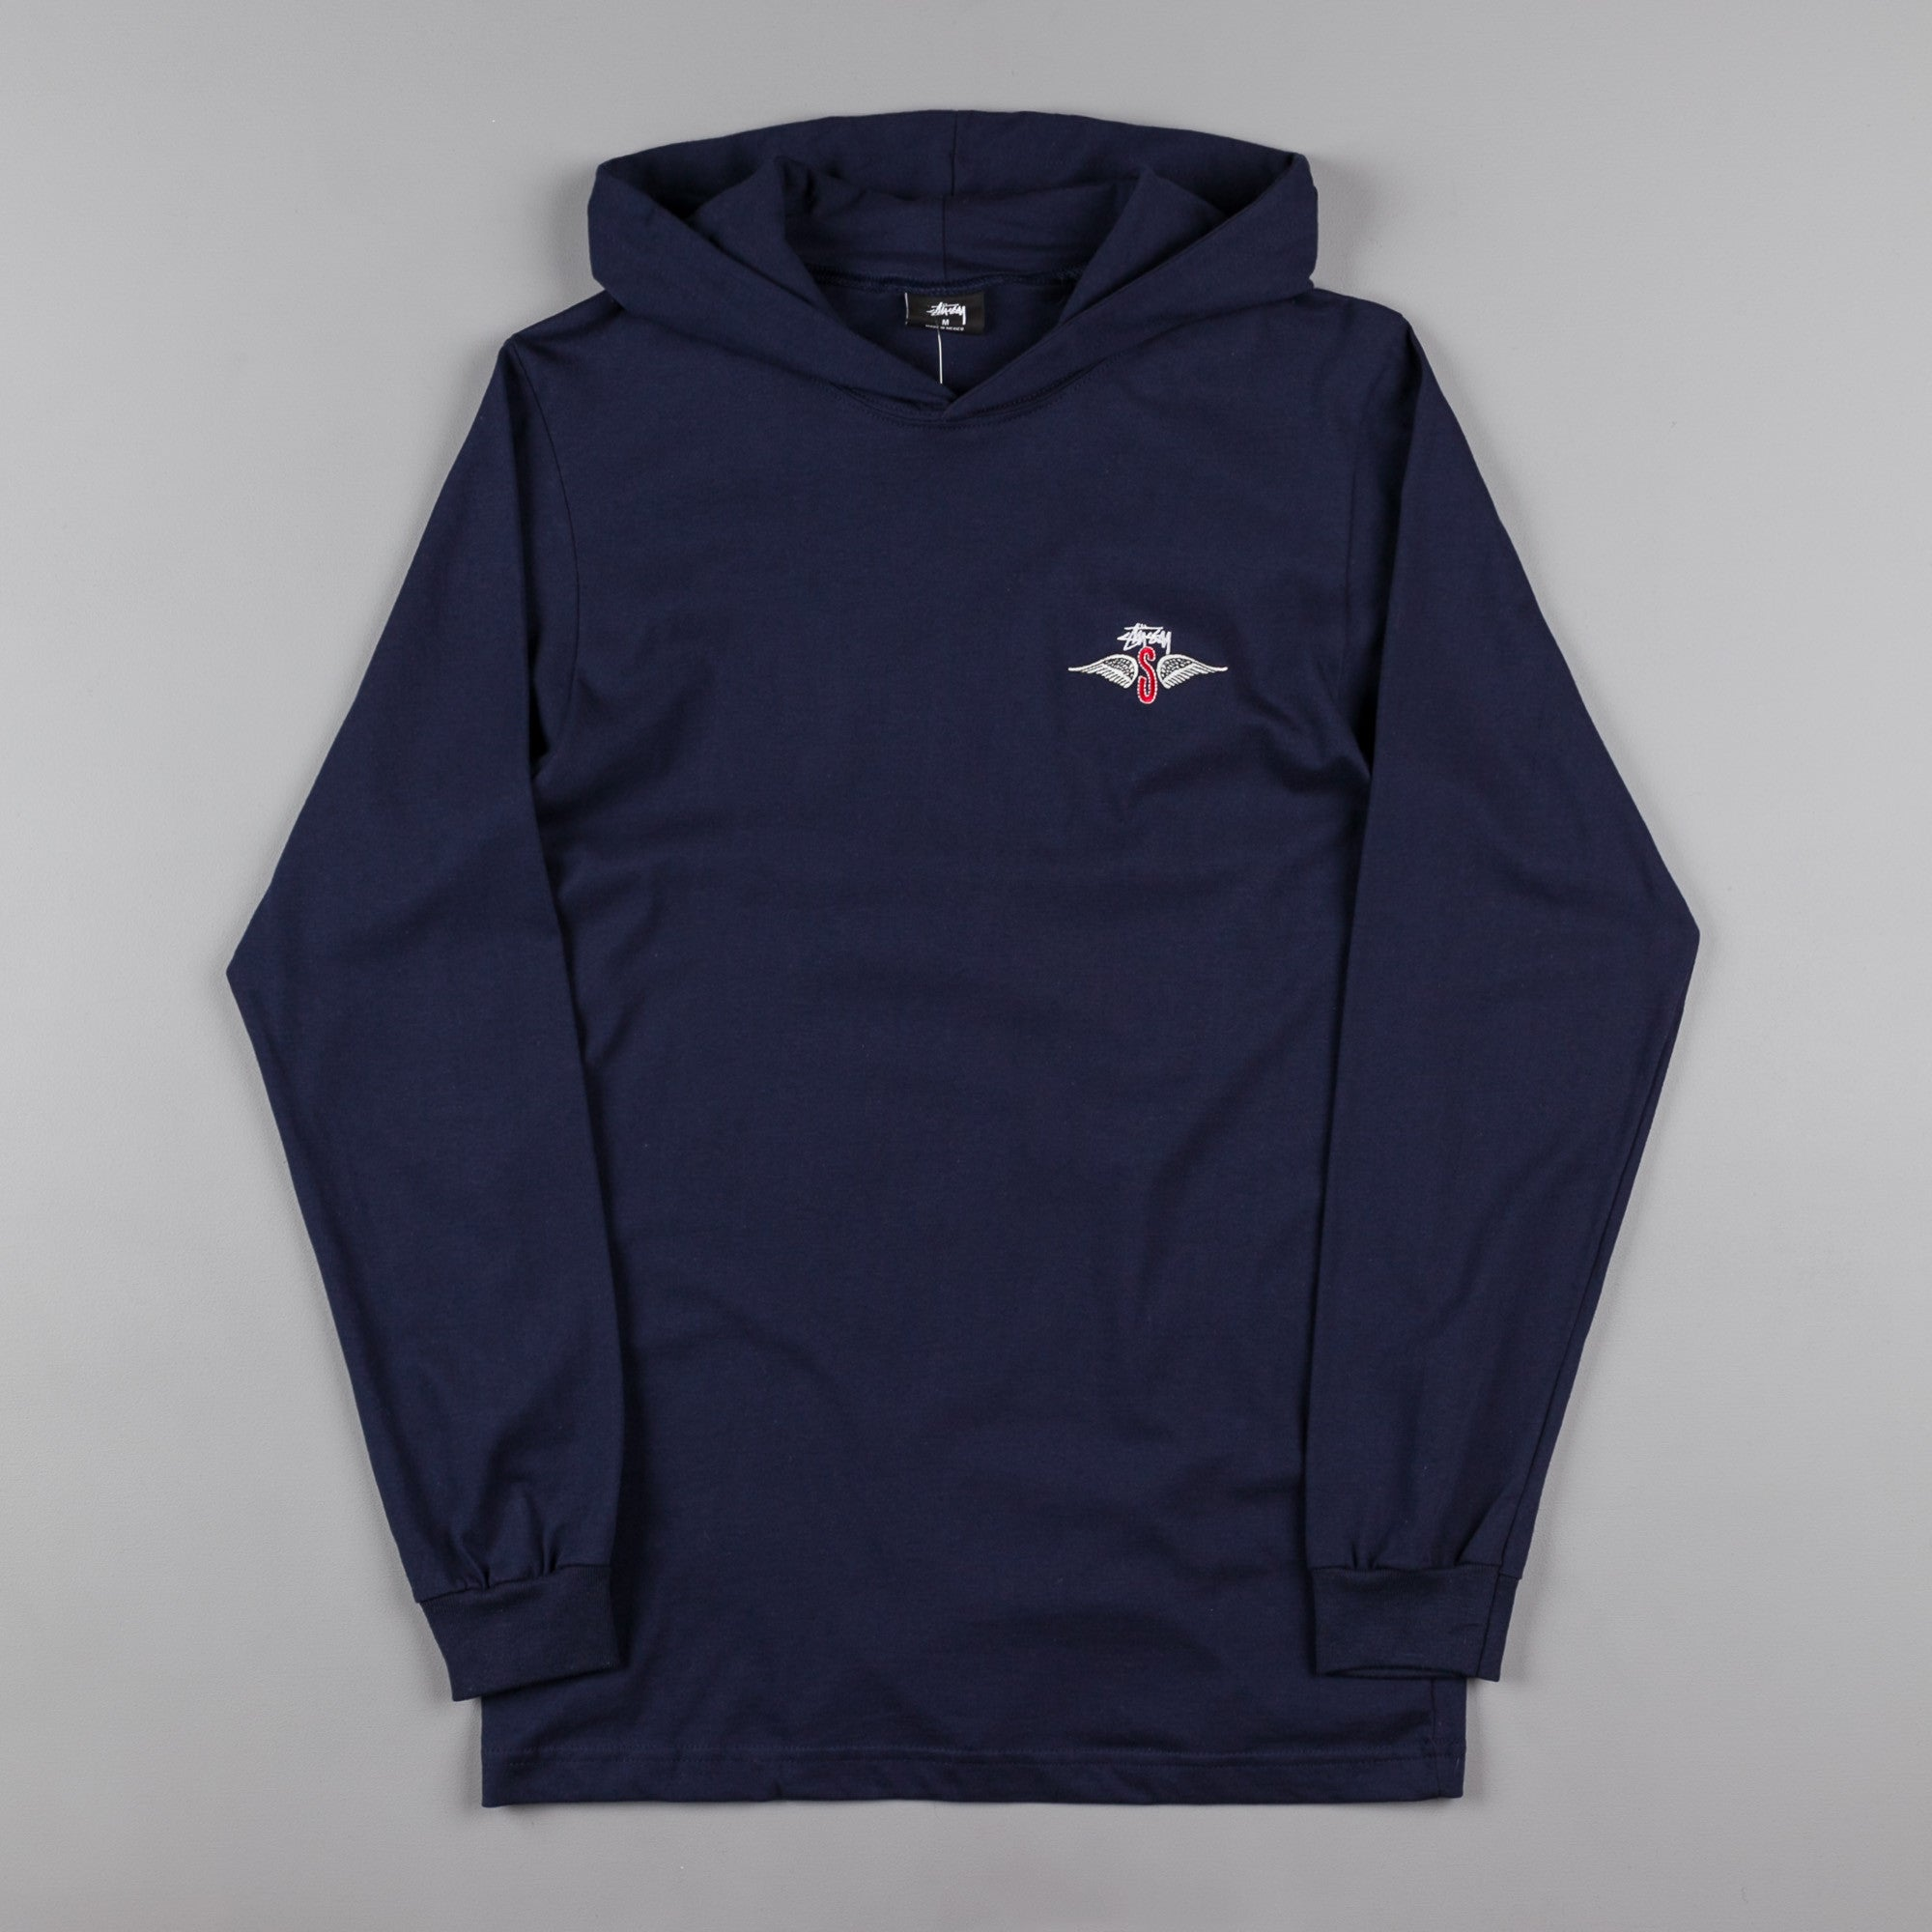 Stussy S Wings Long Sleeve Hooded T-Shirt - Navy